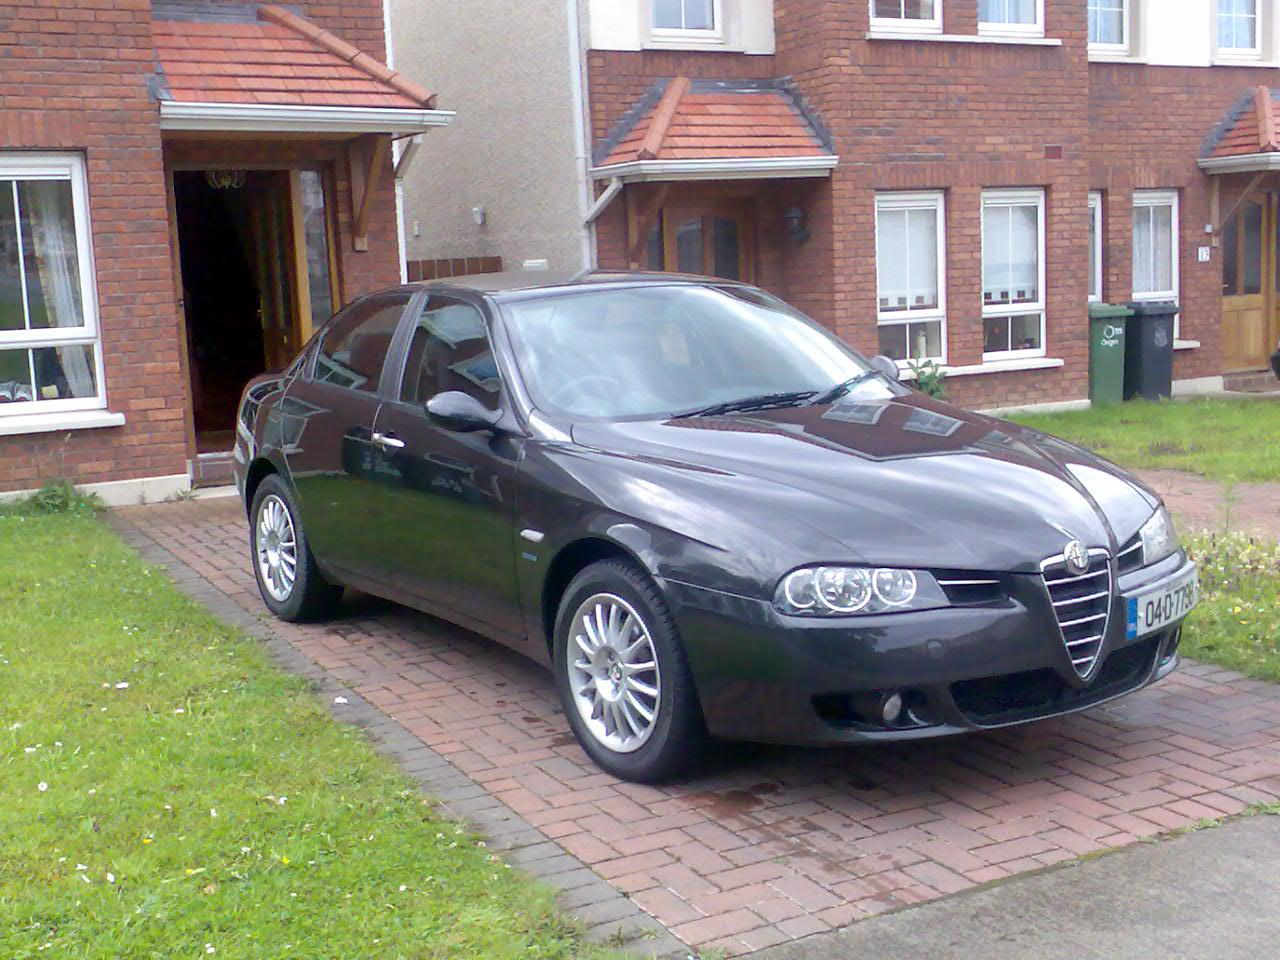 ystuc 2004 alfa romeo 156 specs photos modification info at cardomain. Black Bedroom Furniture Sets. Home Design Ideas